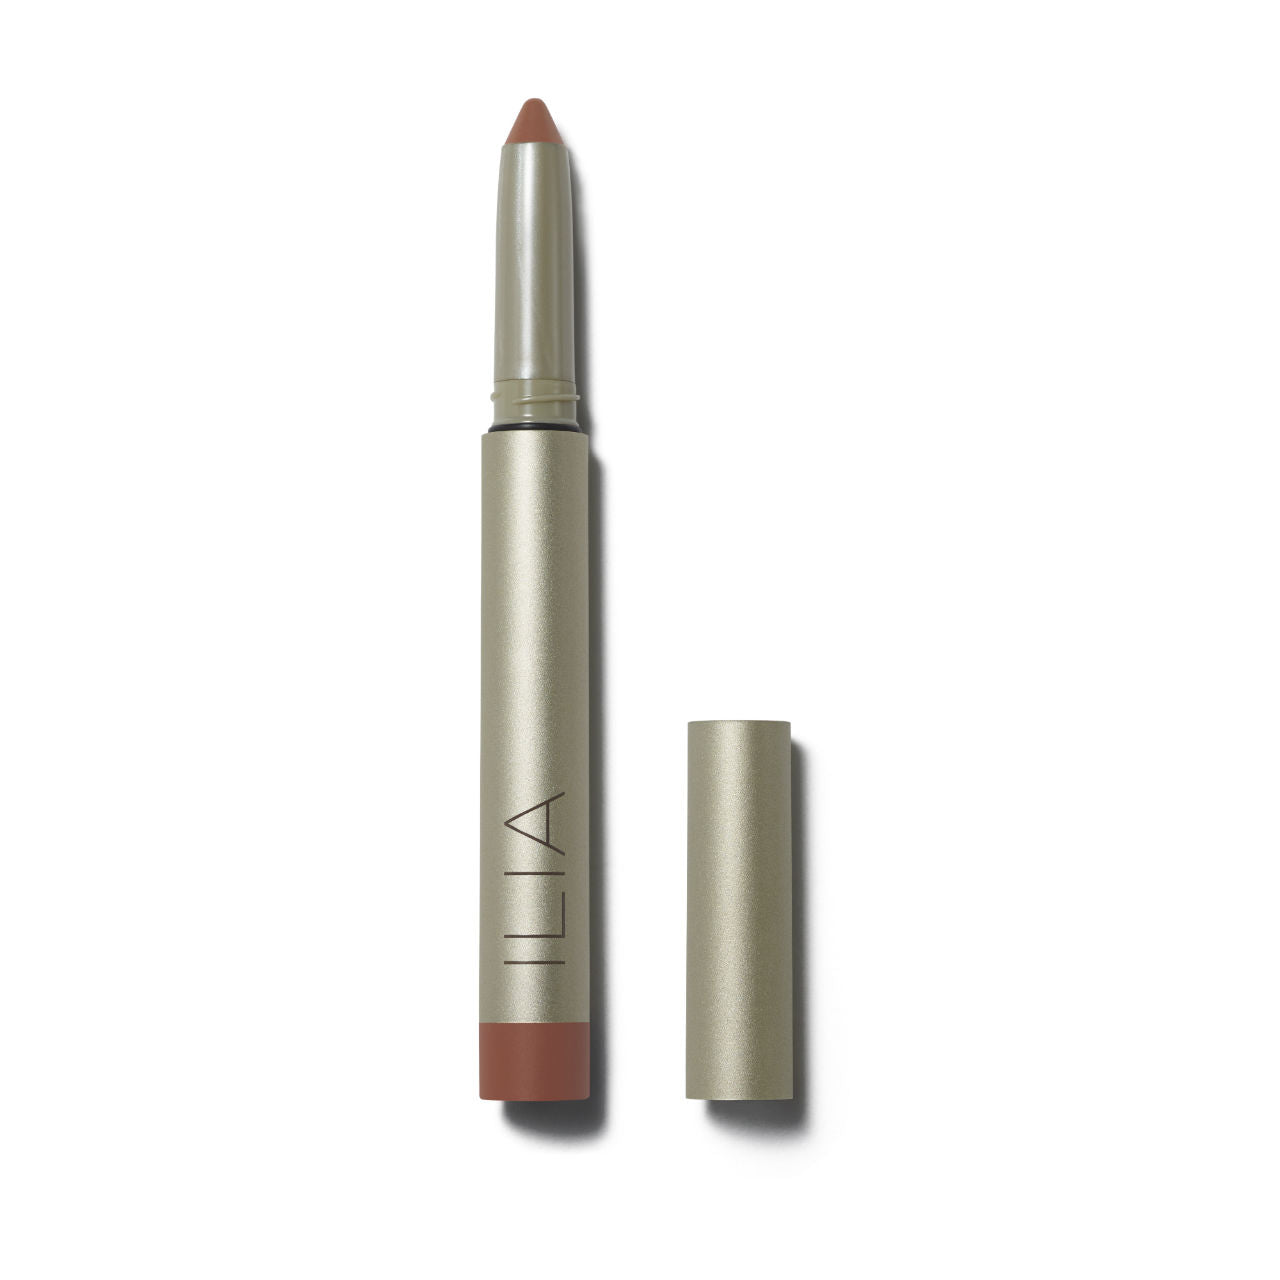 ILIA Satin Cream Lip Crayon - Walk This Way (Neutral Nude)